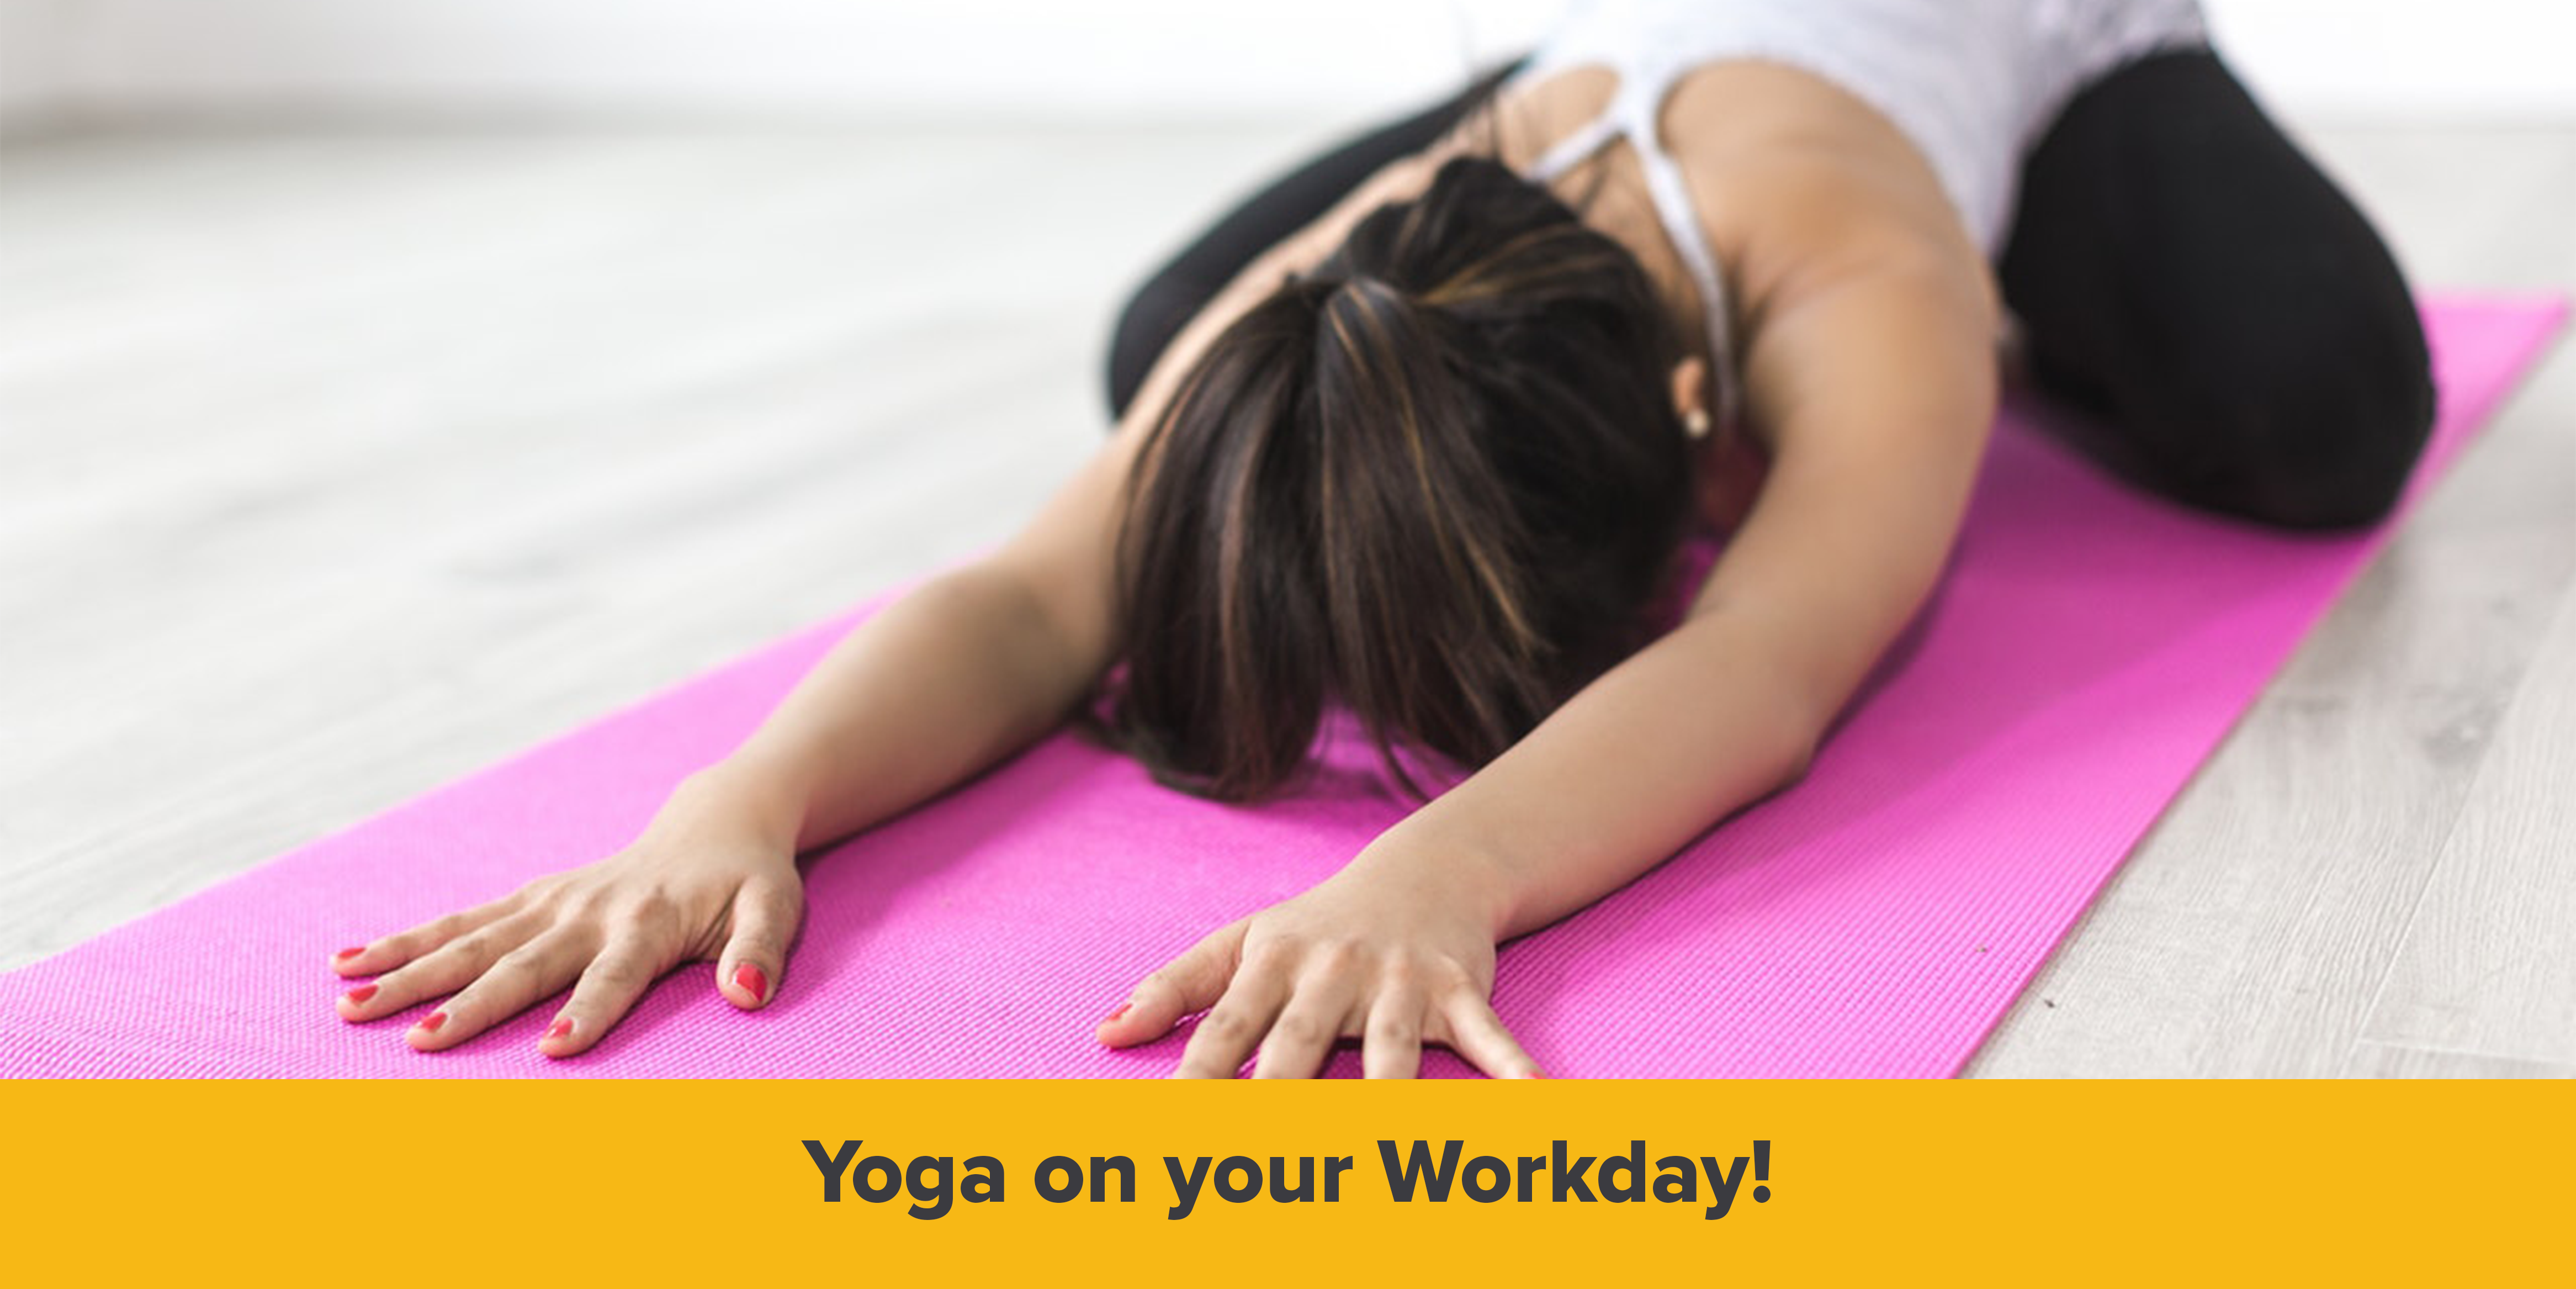 Yoga on your Workday!